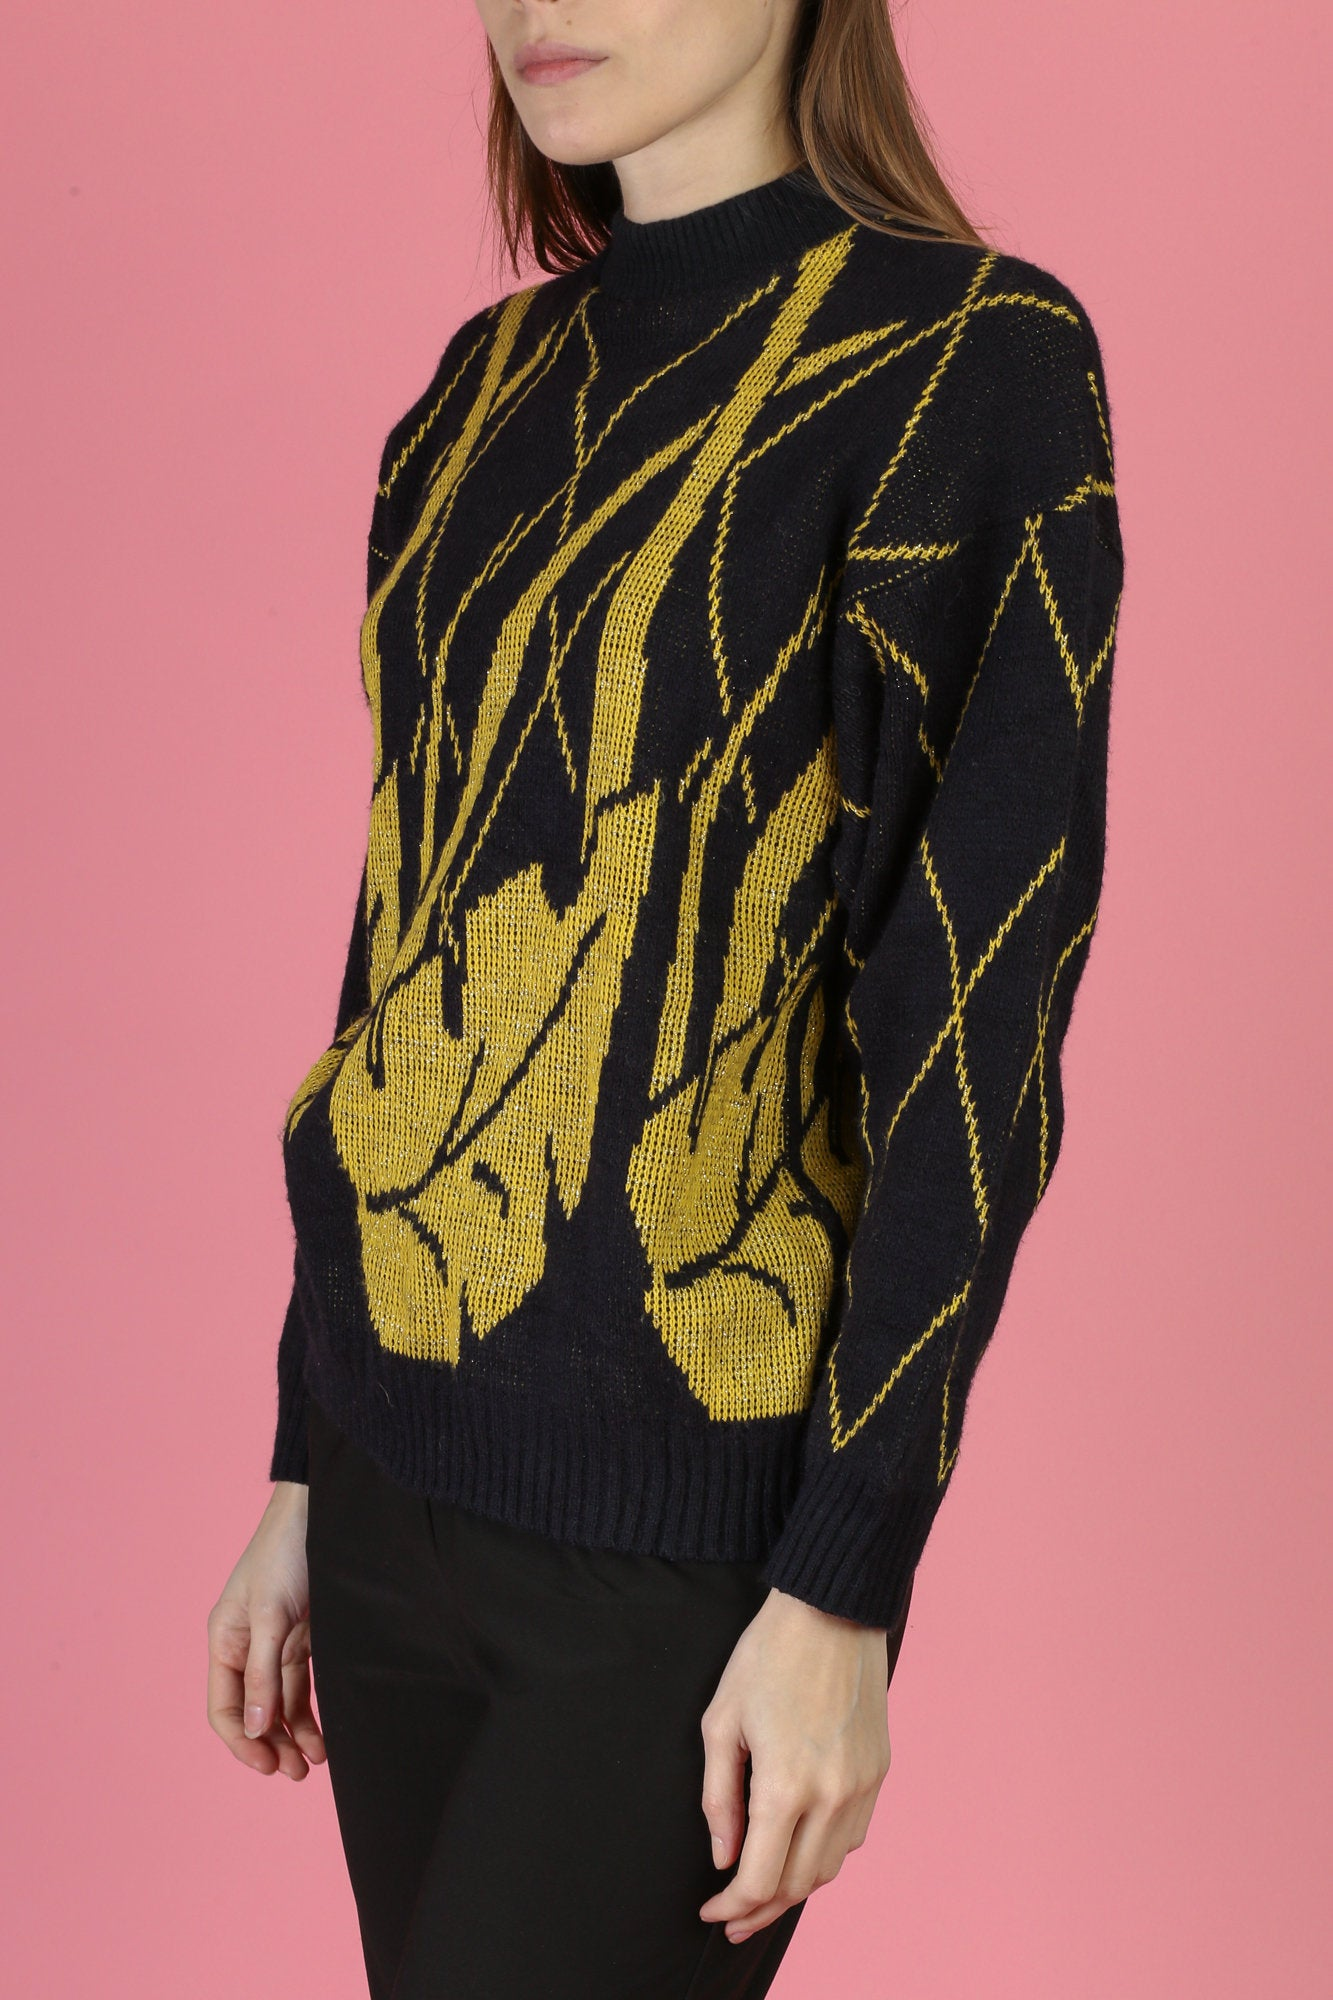 80s Black & Gold Metallic Leaf Pattern Sweater - Small